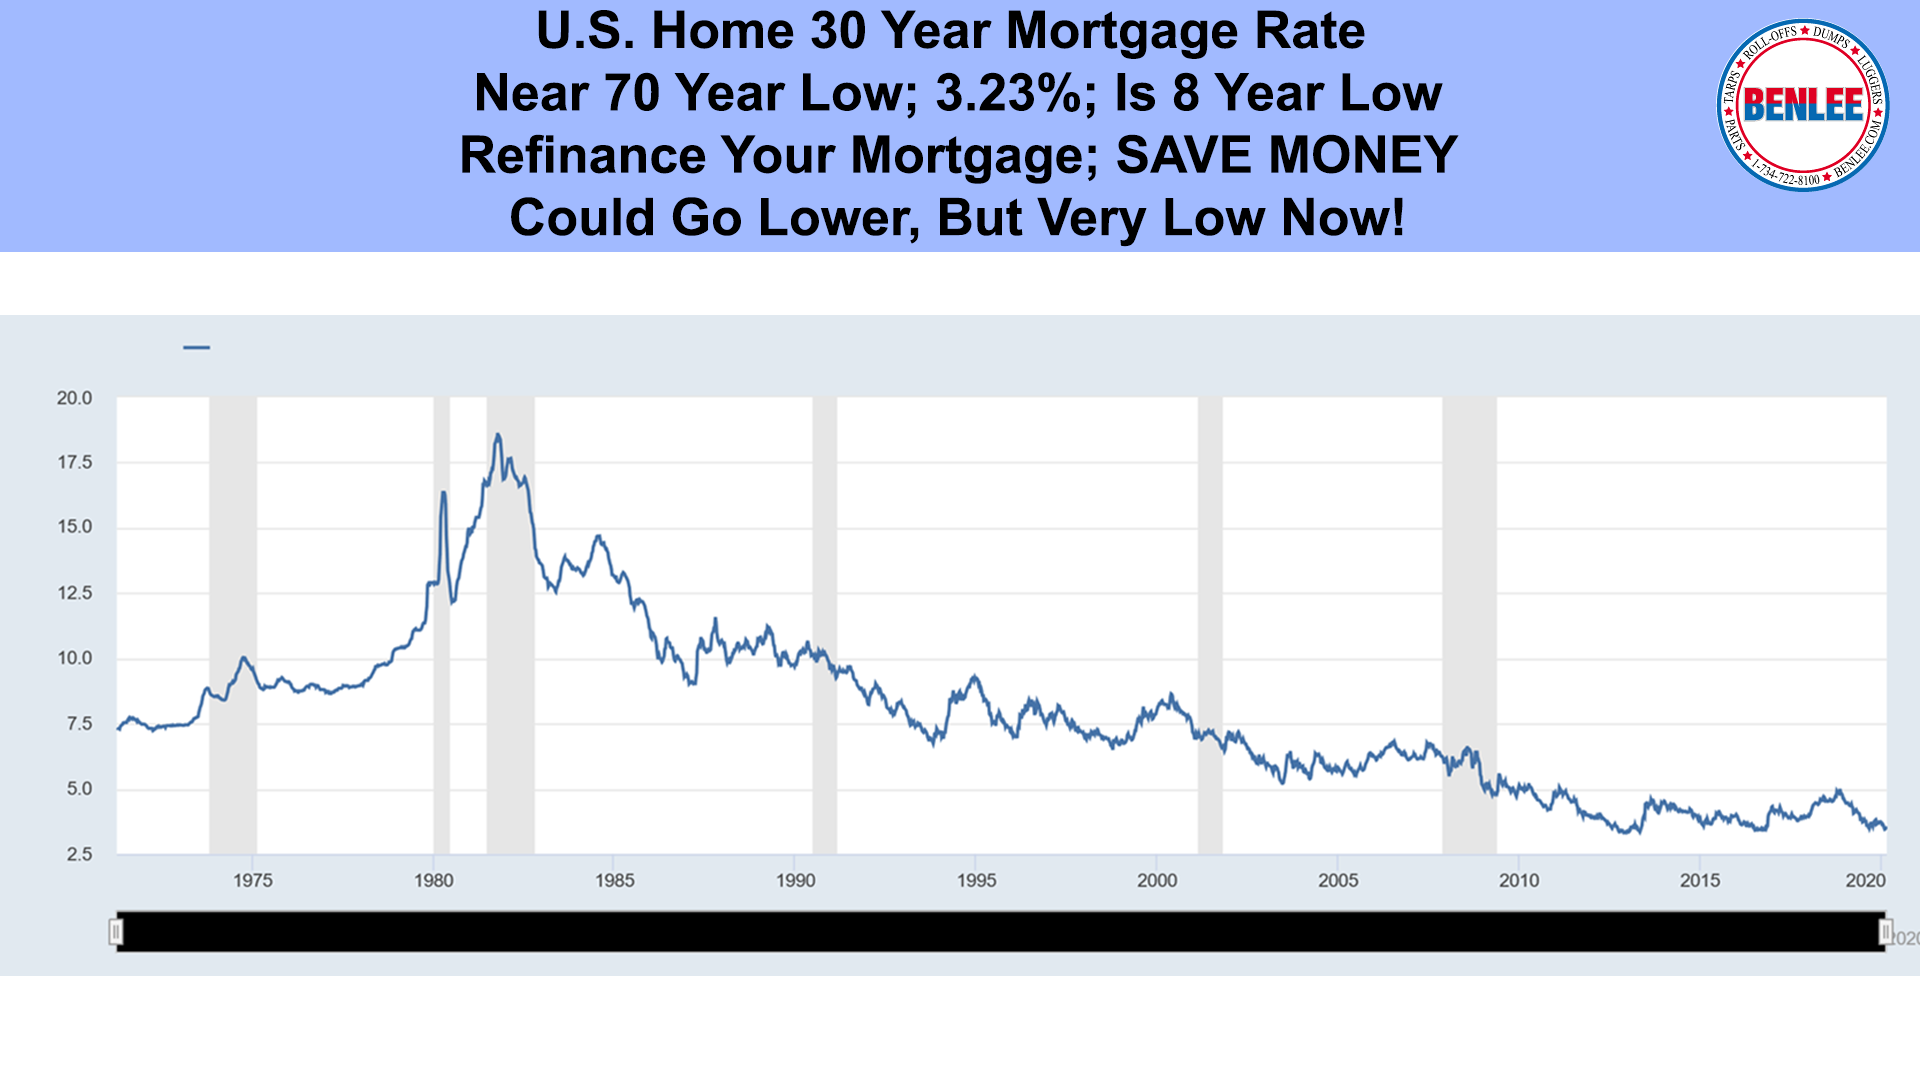 U.S. Home 30 Year Mortgage Rate